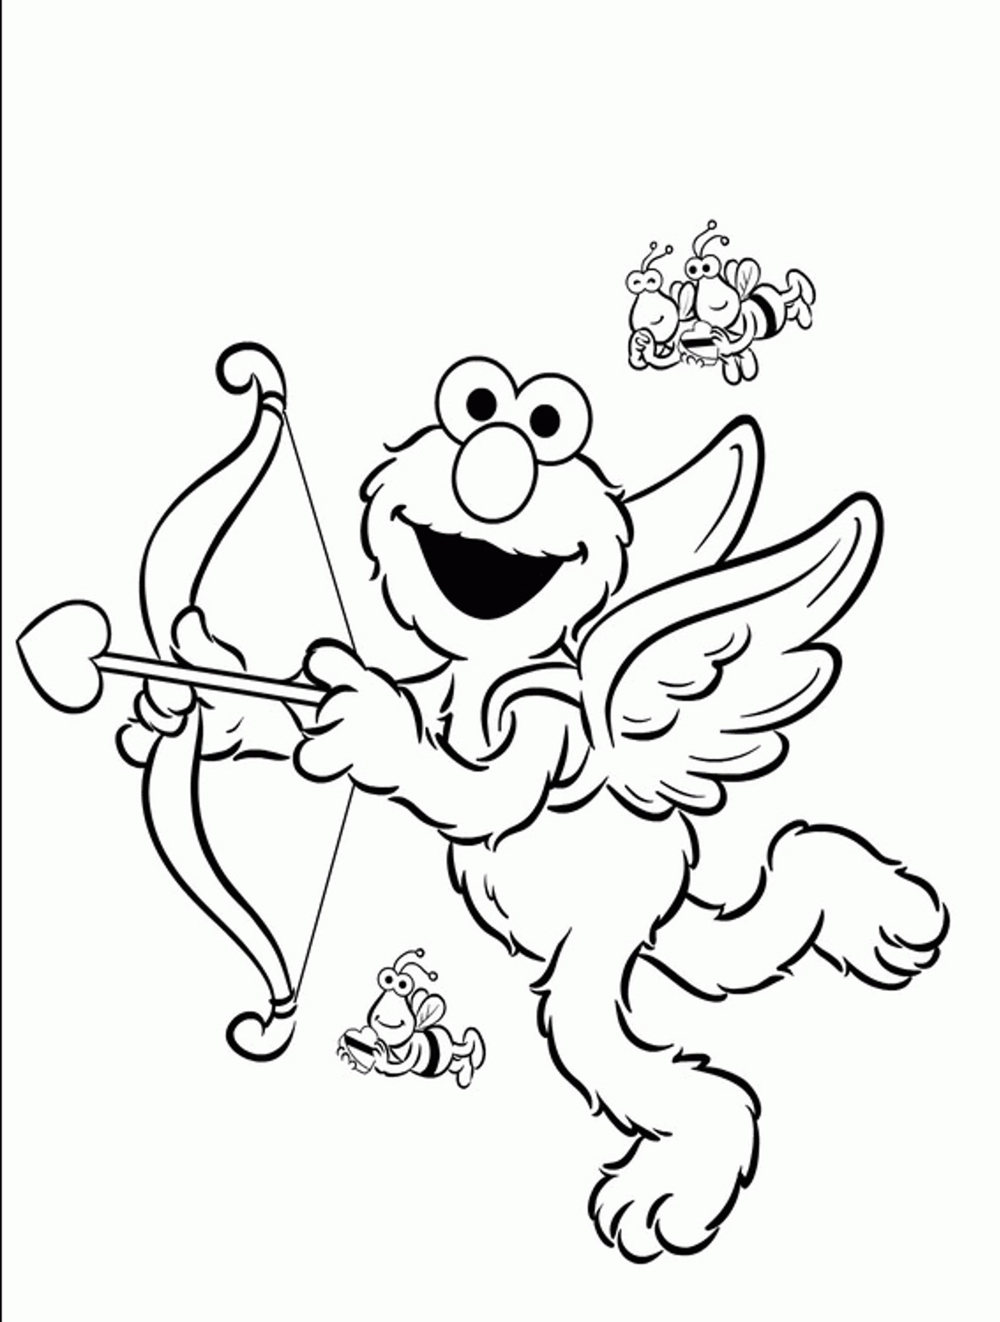 elmo valentines day coloring pages - Childrens Activity Pages